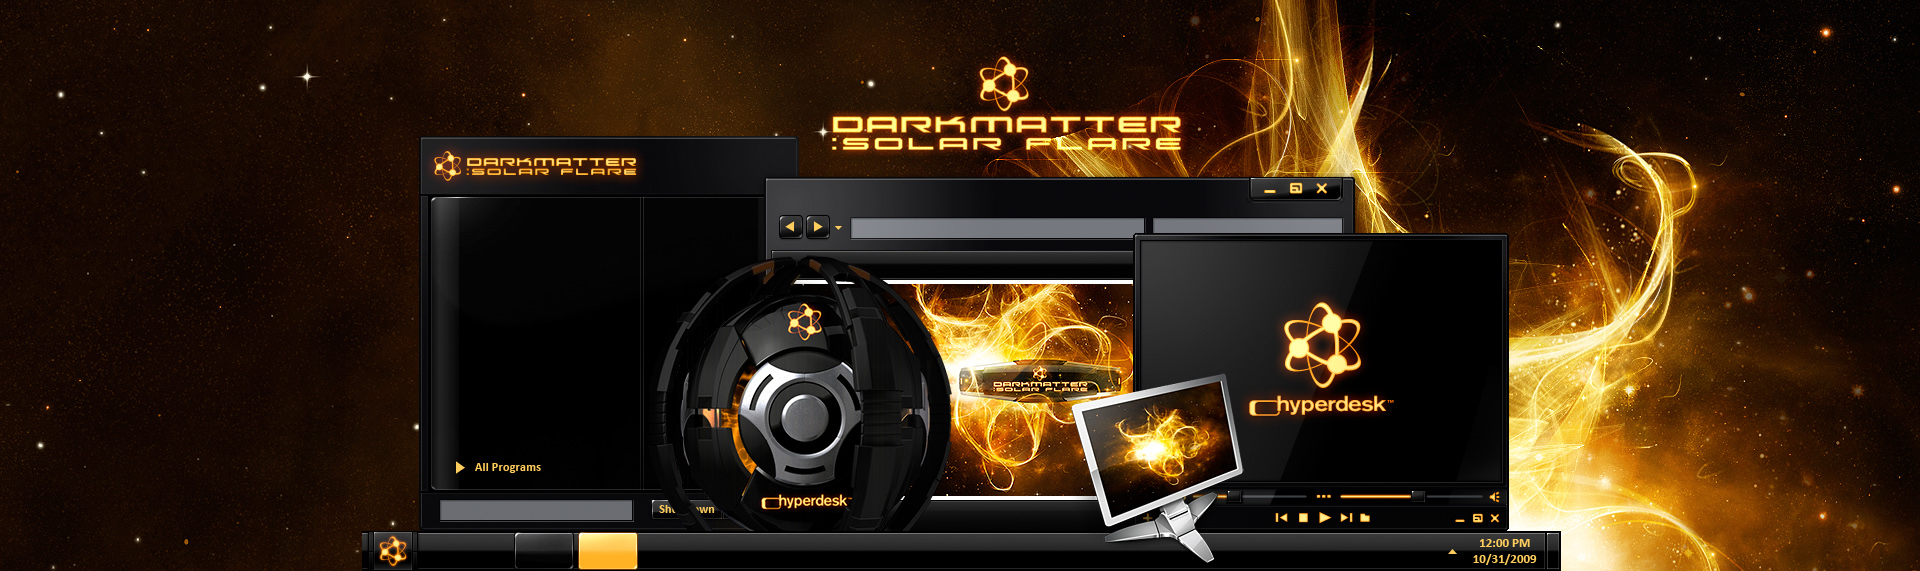 DarkMatter: Solar Flare  Client: The Skins Factory  From the artists who created Alienware's phenomenally popular desktop themes comes an invasion of galactically cool desktops - DarkMatter: Quadrilogy. DarkMatter: Solar Flare, is an unbelievably slick hypersuite that completely transforms Windows XP / Vista / 7, into a super-futuristic, hi-tech environment. Hyperdesk's DarkMatter: Subspace contains: an icon set, custom Wallpapers, Windows Media Player skin & a dynamic, animated iTunes / WMP audio remote widget. This desktop theme is no longer available.